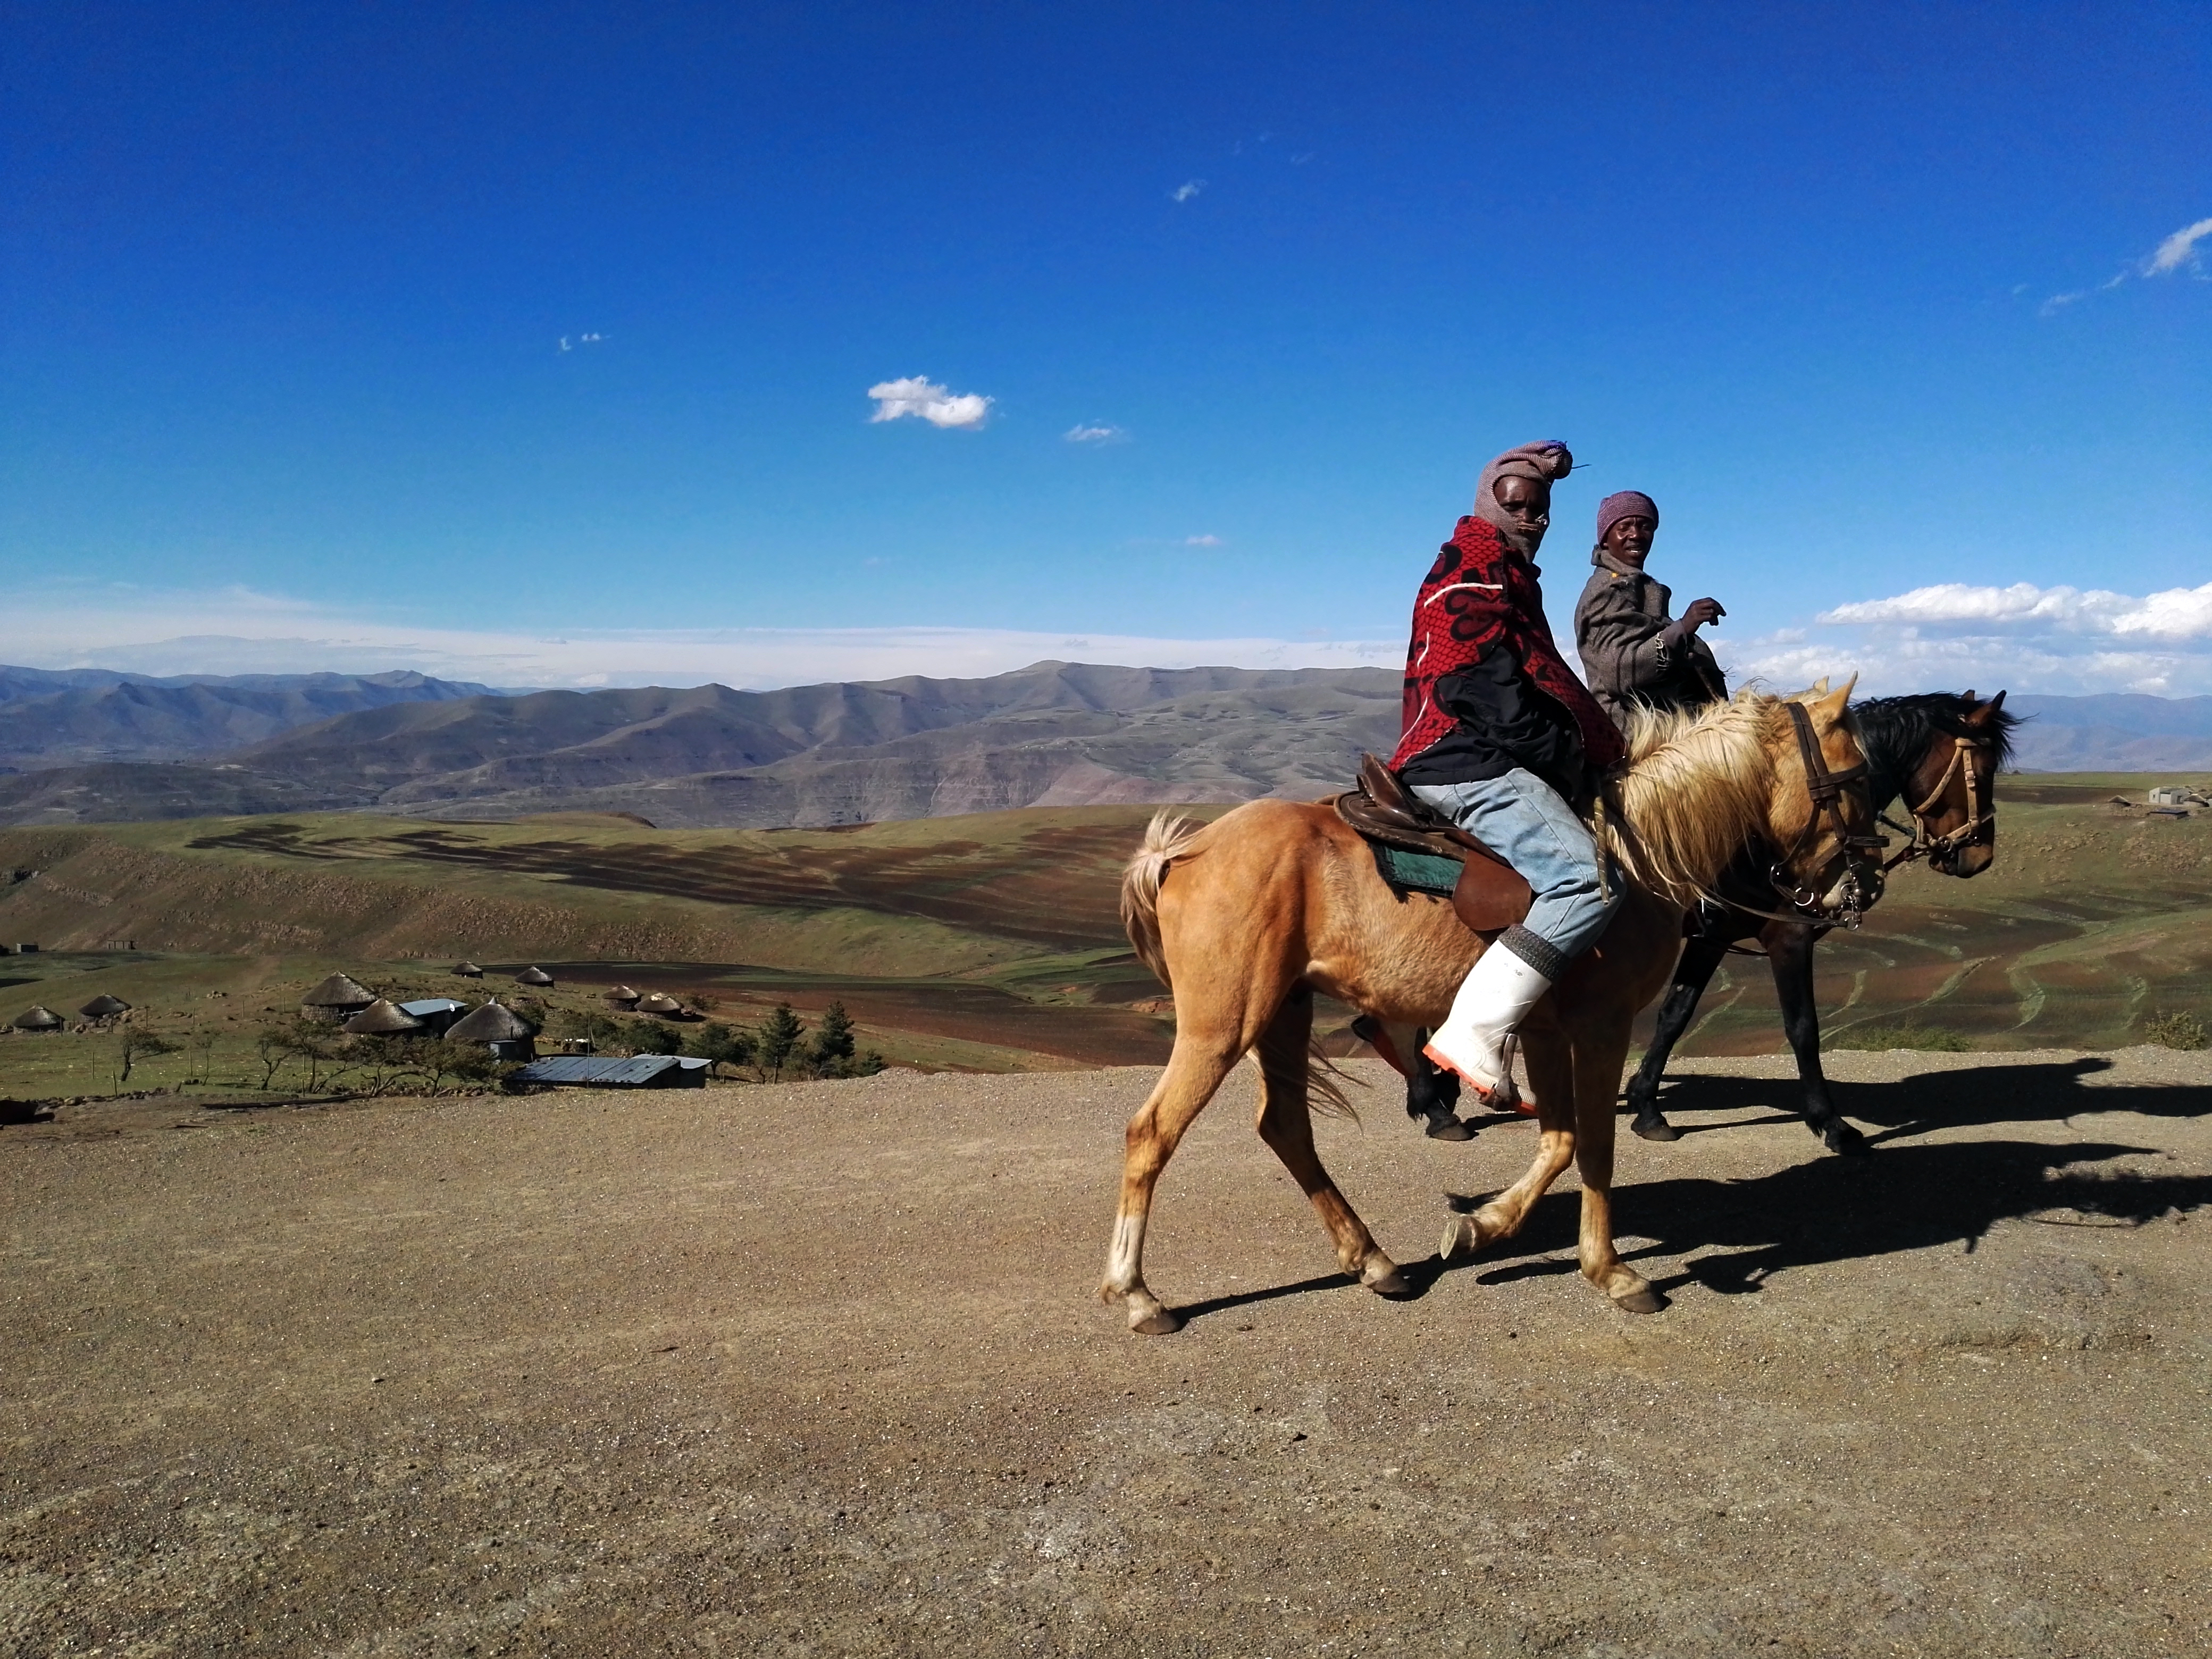 171124_Lesotho-Day2155556